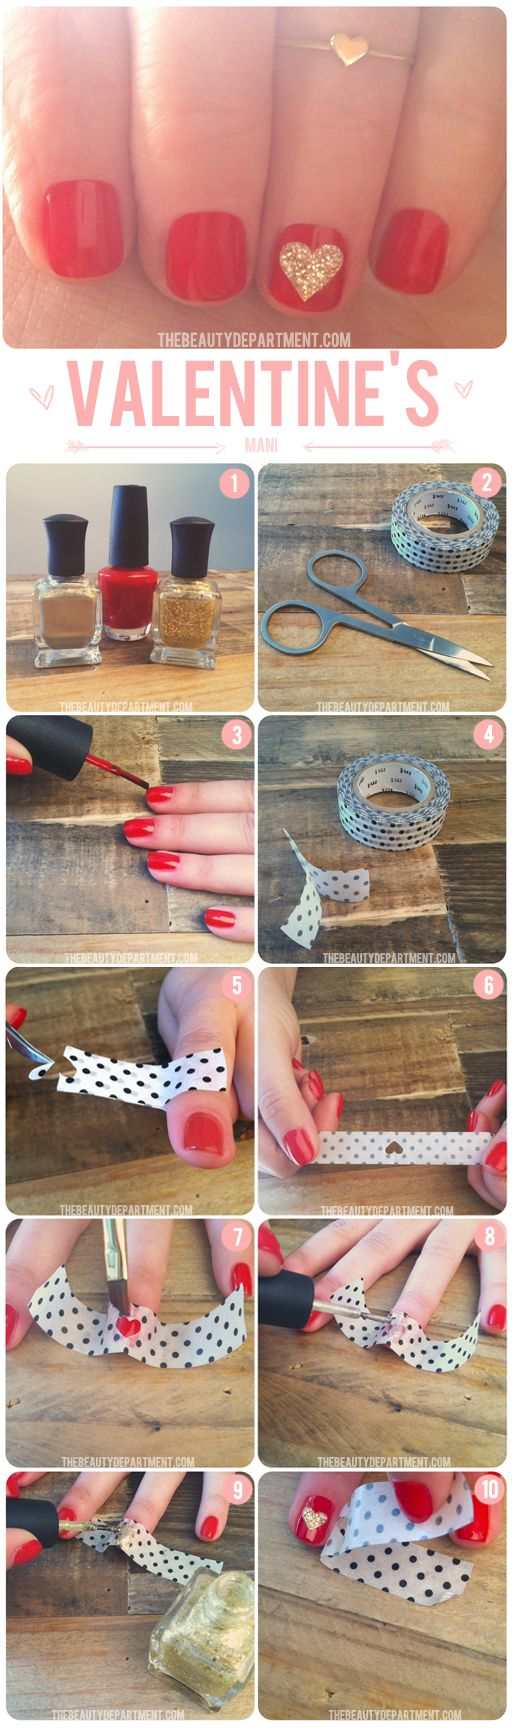 Pinned by www.SimpleNailArtTips.com VALENTINE NAIL ART DESIGN IDEAS - TAPING - Using scotch tape to make a heart stencil.